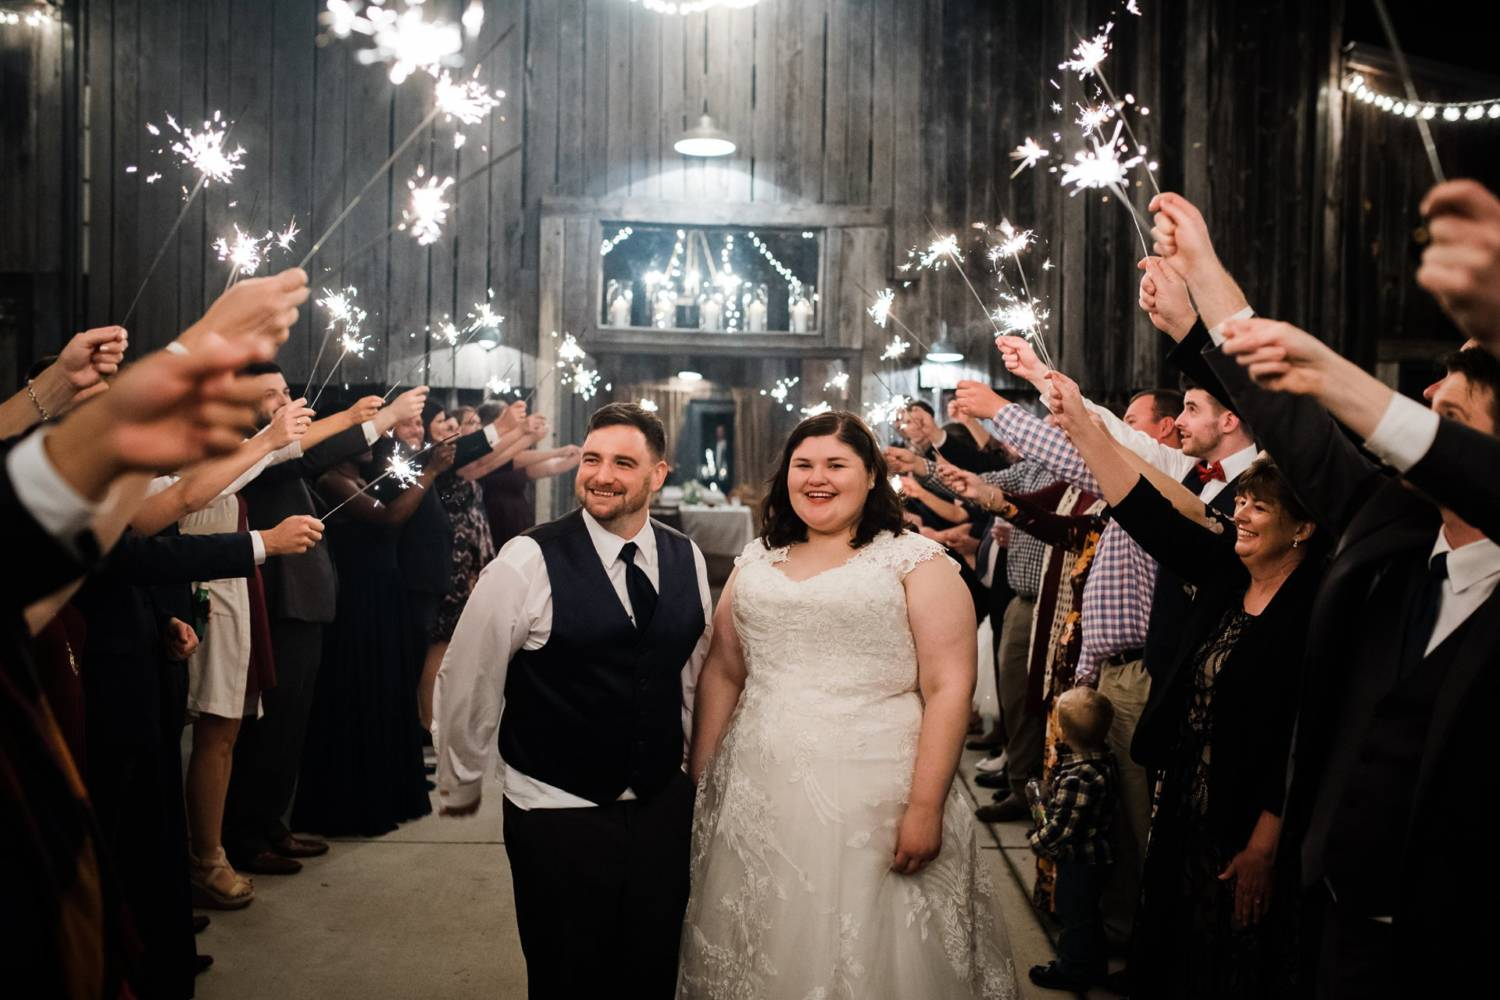 Barn wedding bride and groom sparkler exit